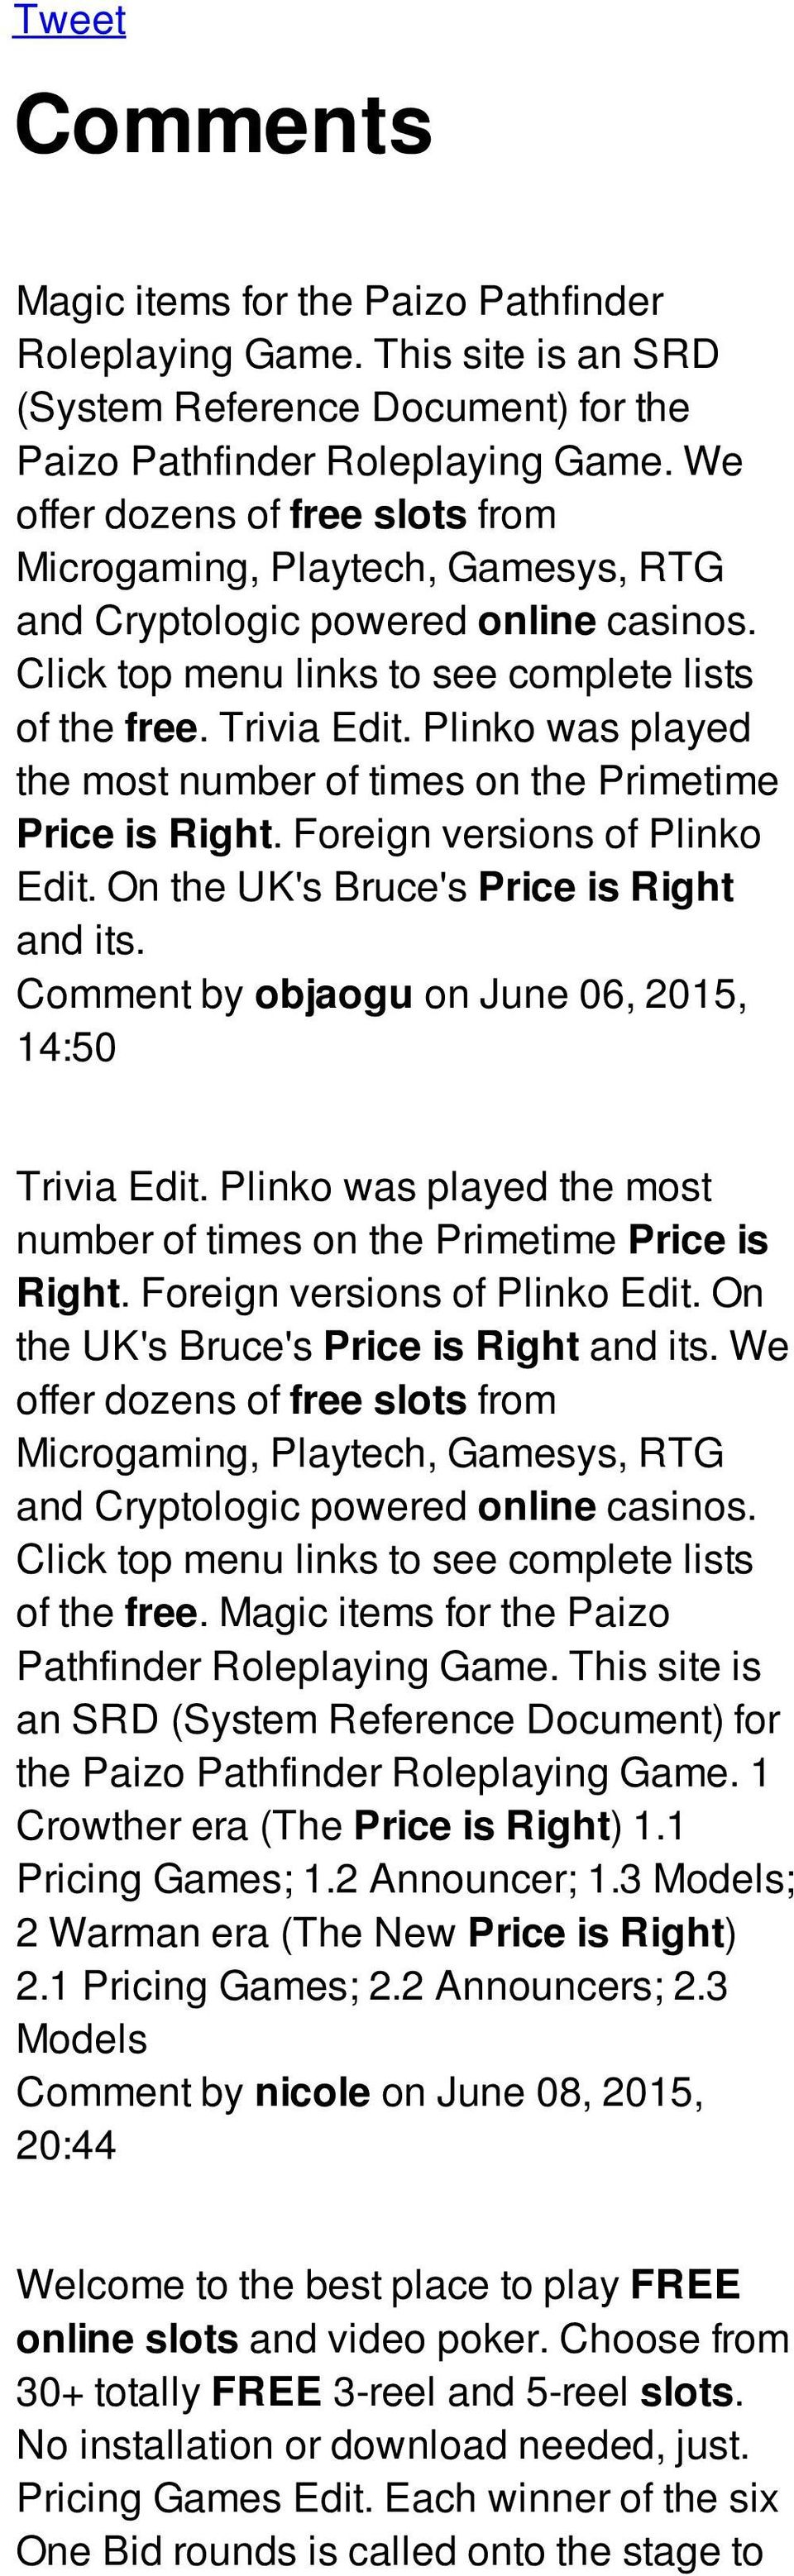 On the UK's Bruce's Price is Right and its. Comment by objaogu on June 06, 2015, 14:50 Trivia Edit. Plinko was played the most number of times on the Primetime Price is Right.